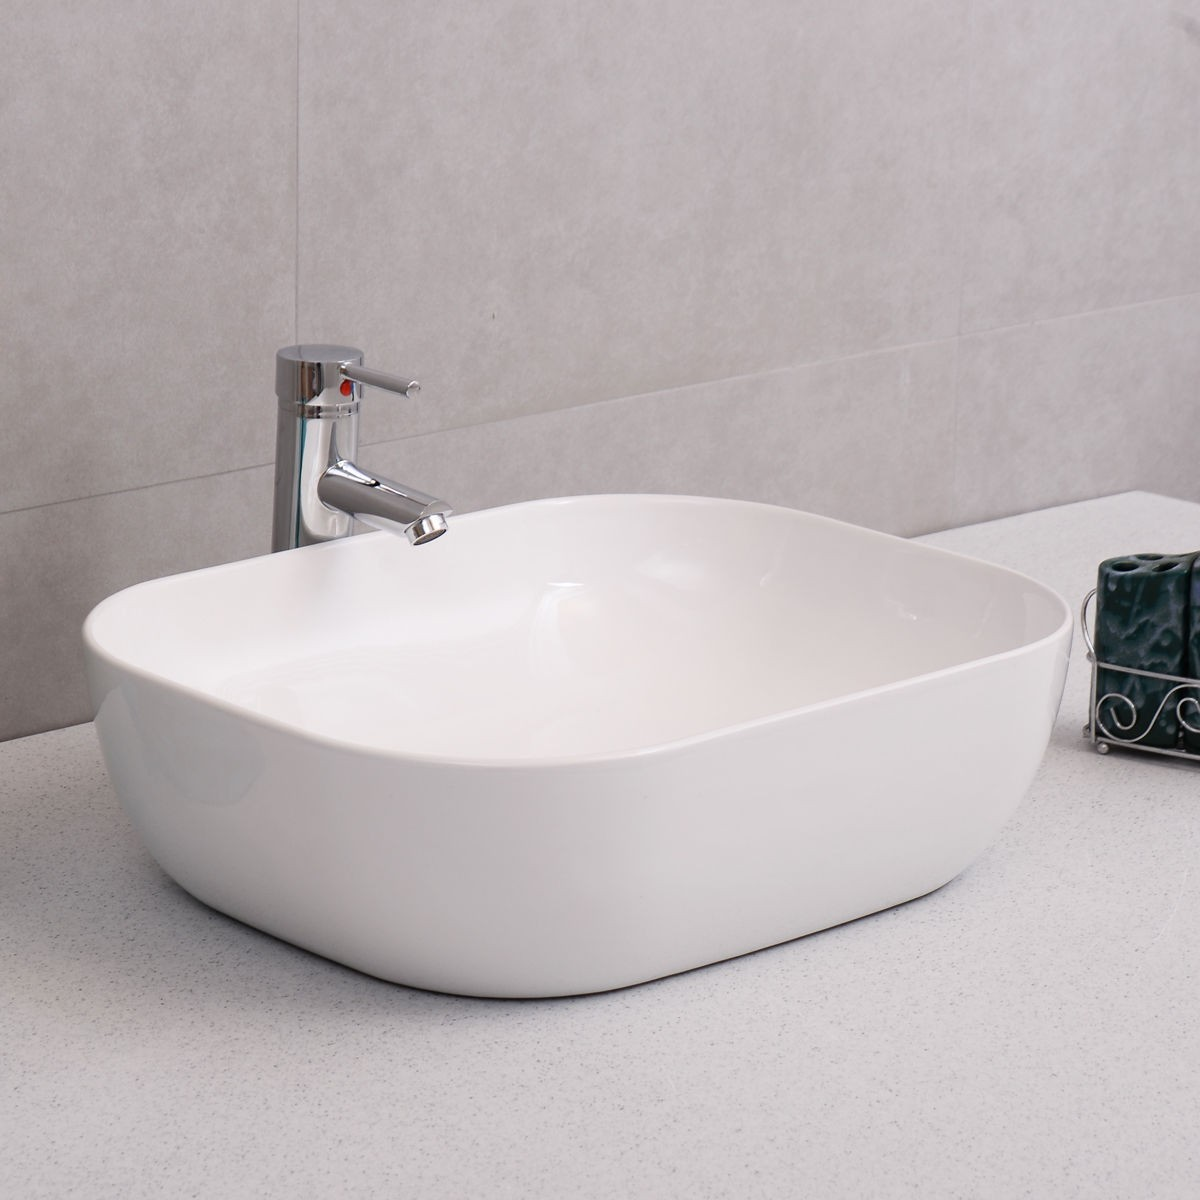 W Modern Rectangle Bathroom Porcelain Vessel Vanity Sink